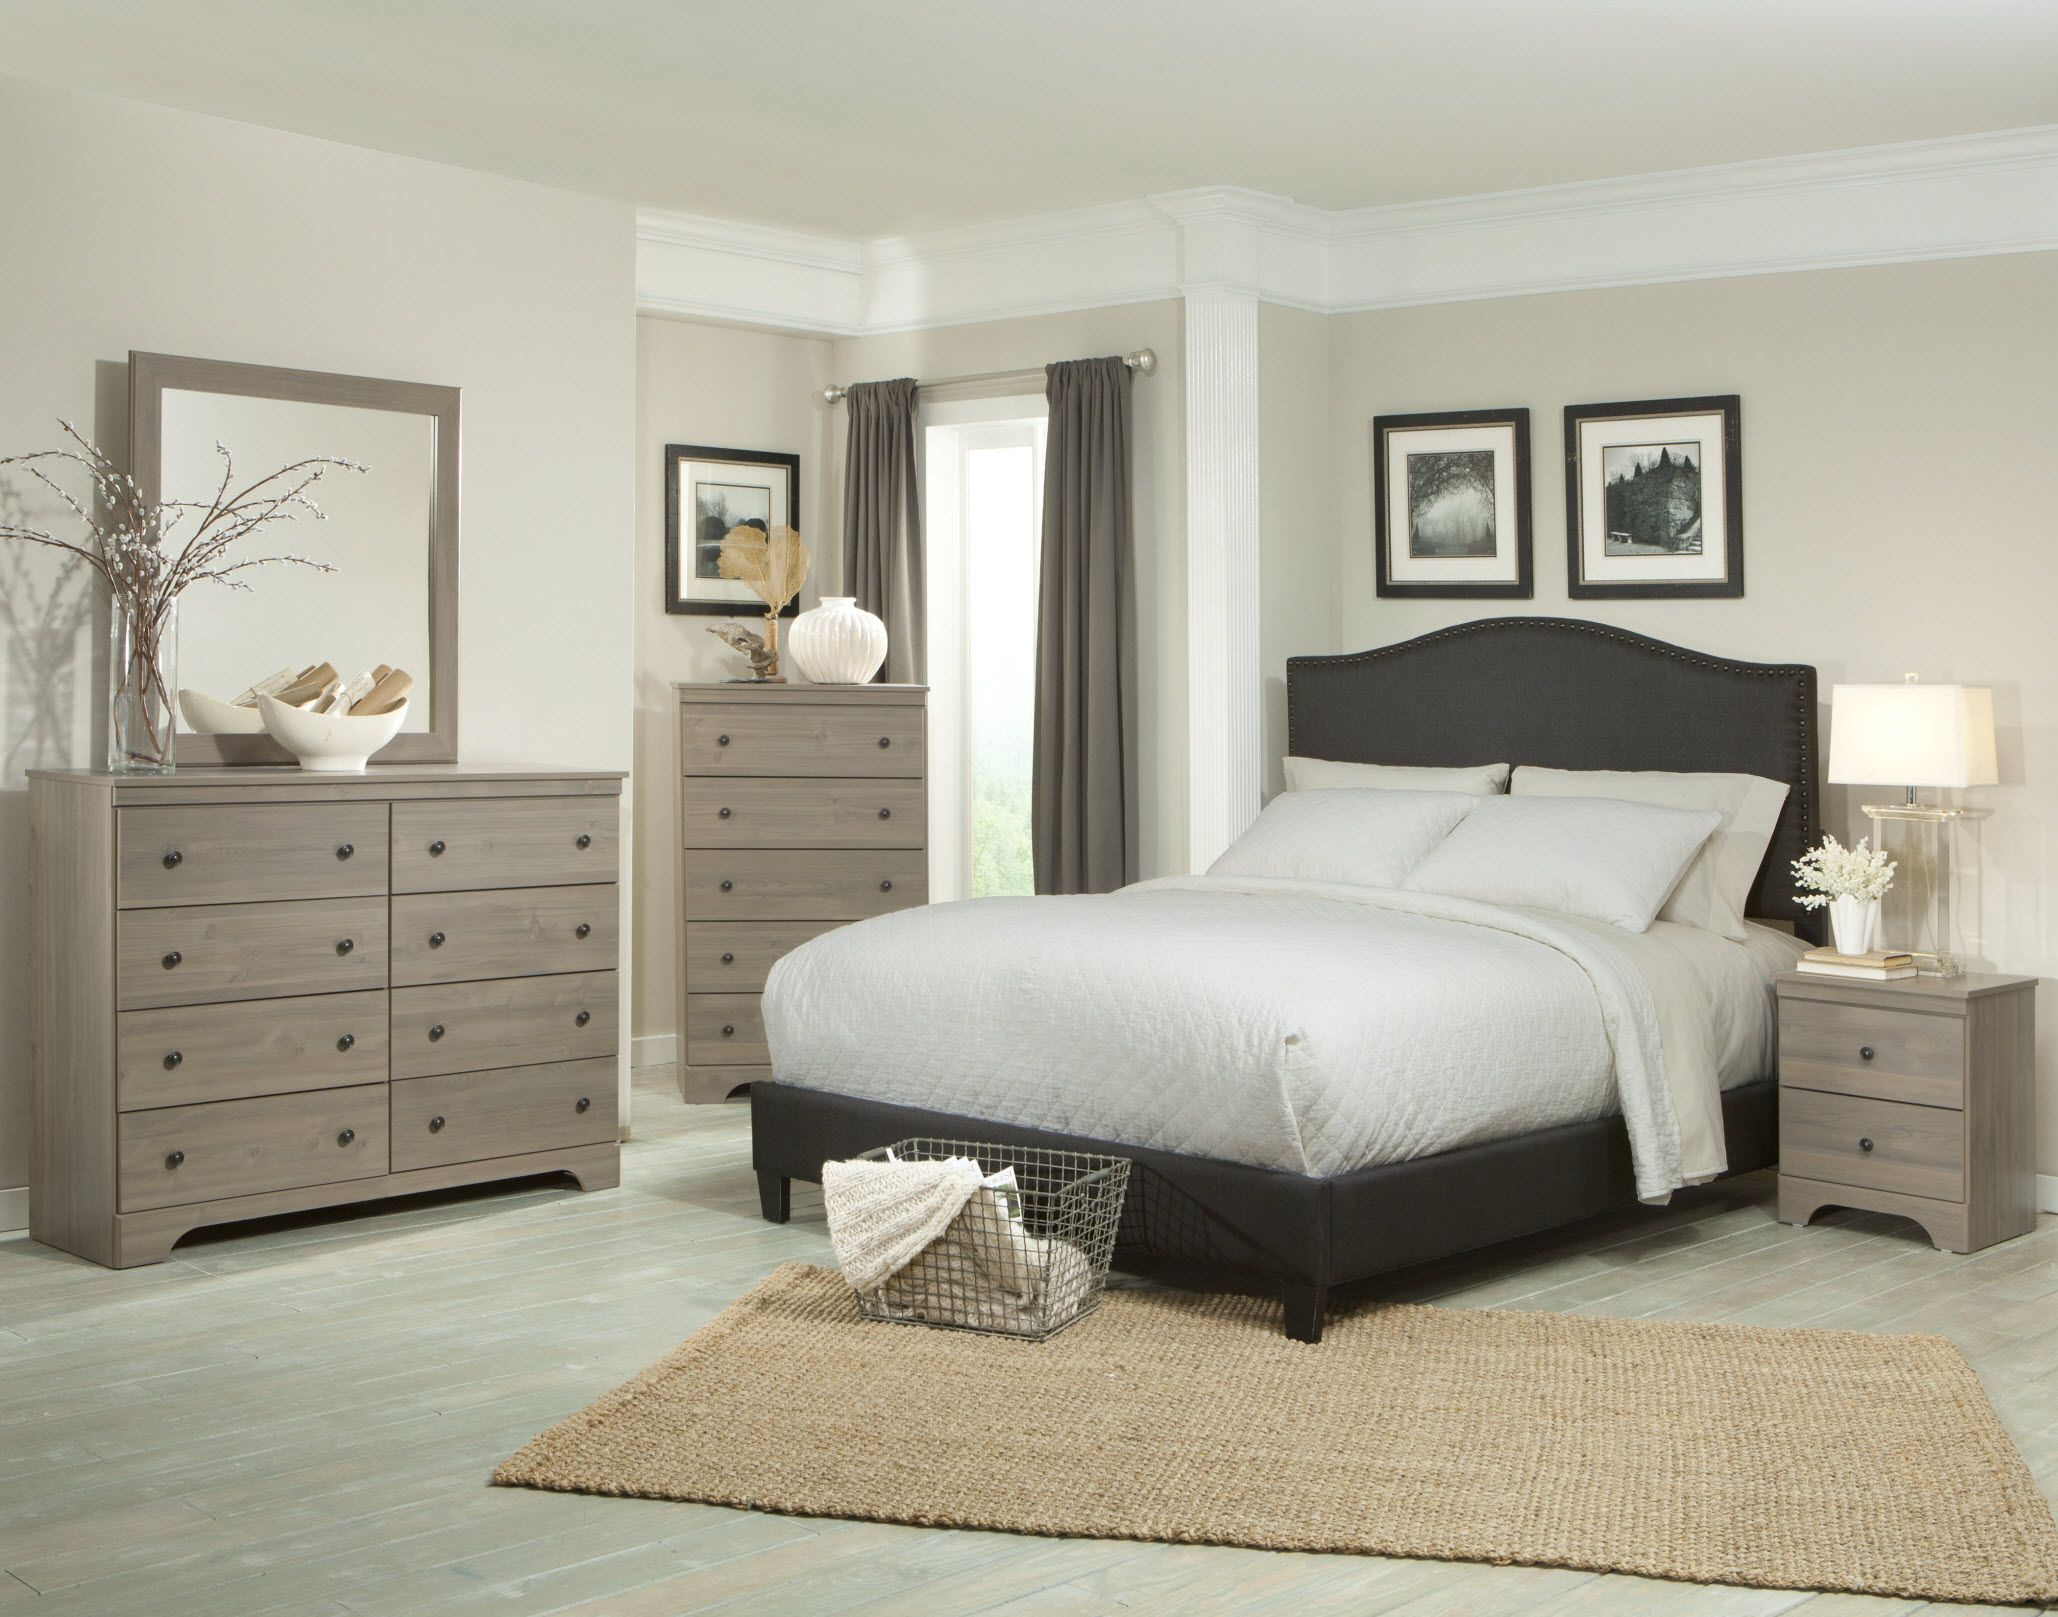 Shop Kith Furniture Contemporary Bedroom Set At Homelement For The Best  Selection And Price Online. Shop Contemporary Bedroom Set And More.